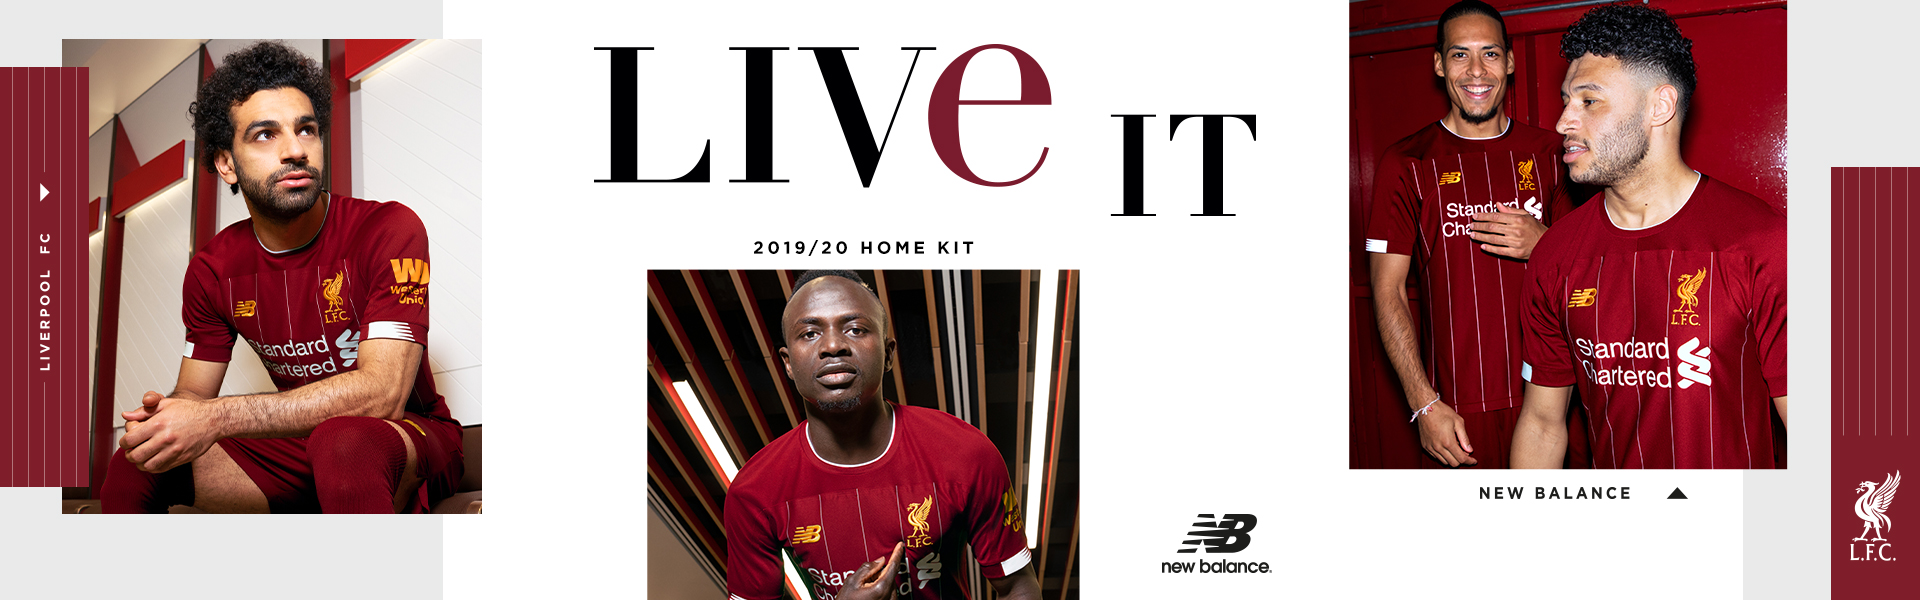 Liverpool 2019/20 Home Away 3rd kits online shop